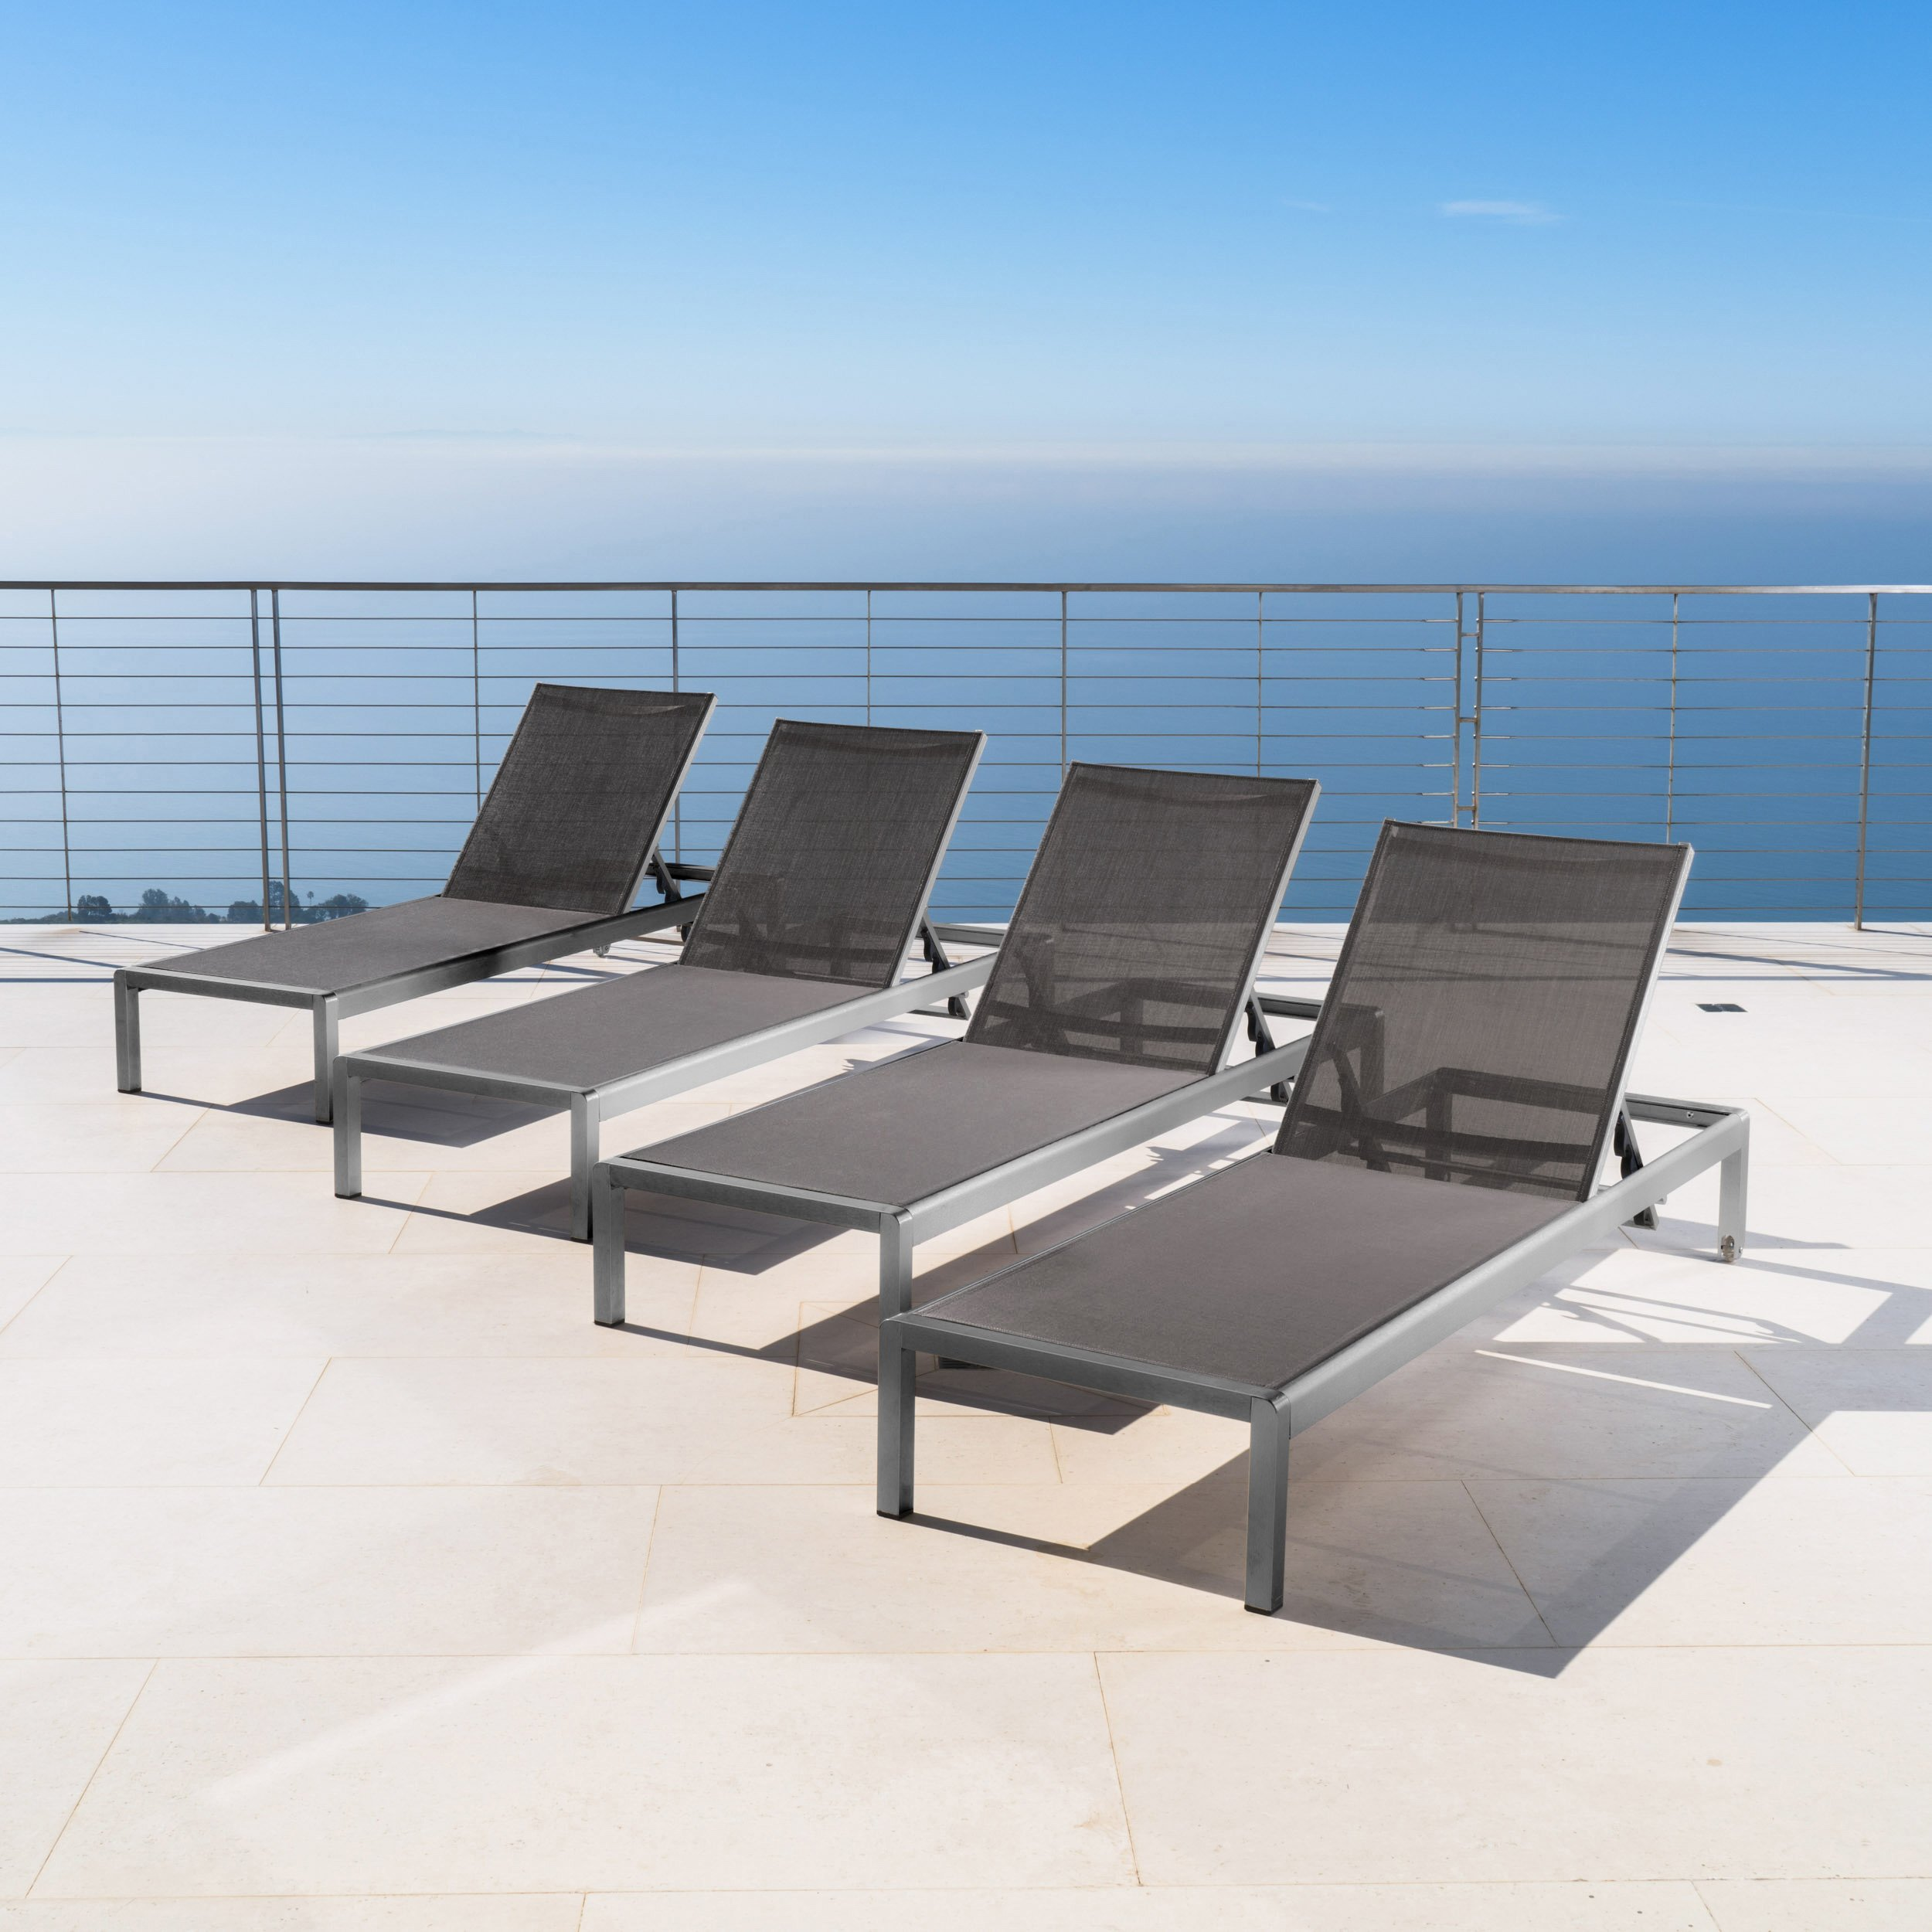 Coral Bay Outdoor Grey Aluminum Chaise Lounge with Dark Grey Mesh Seat (Set of 4)